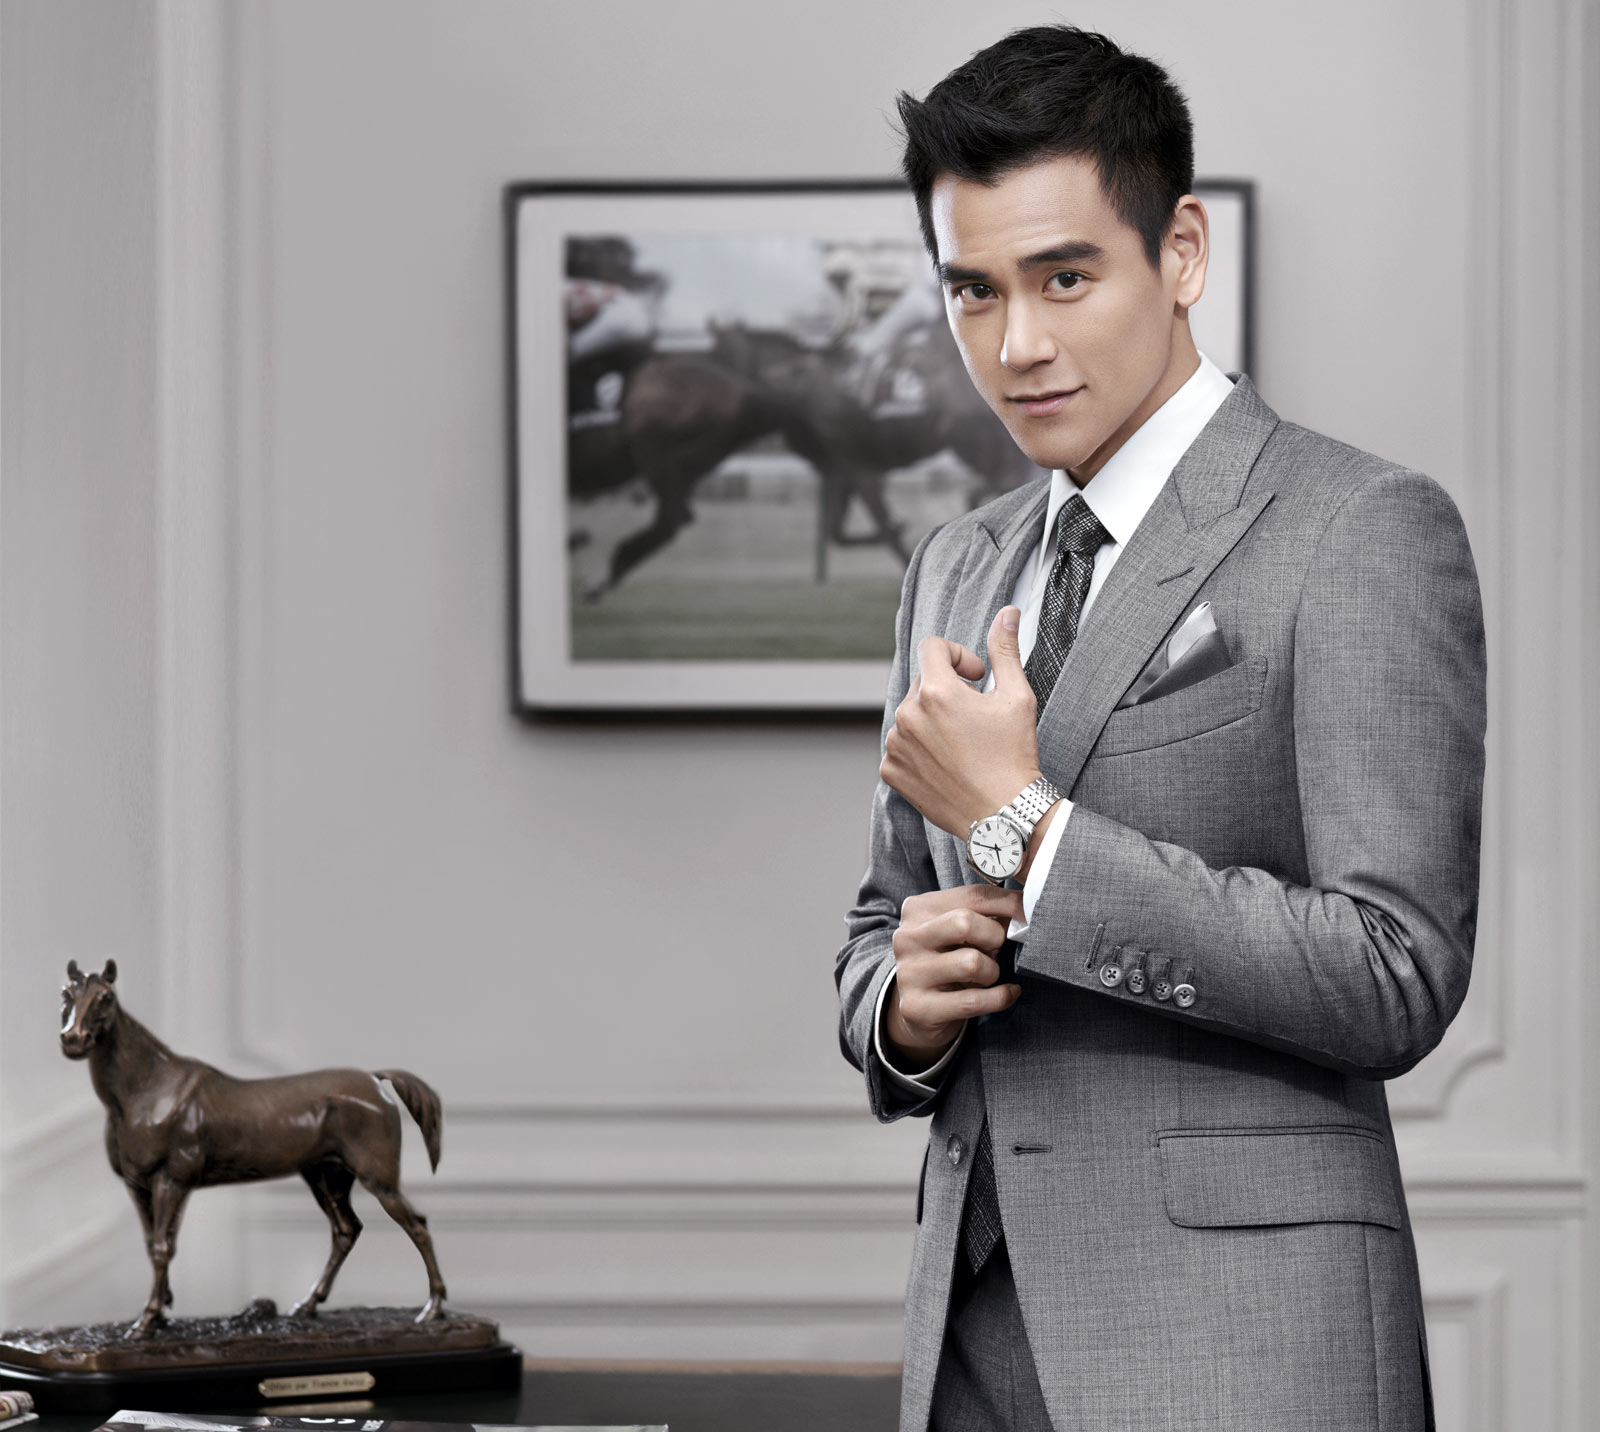 Eddie Peng ambassador of the Conquest Classic watch